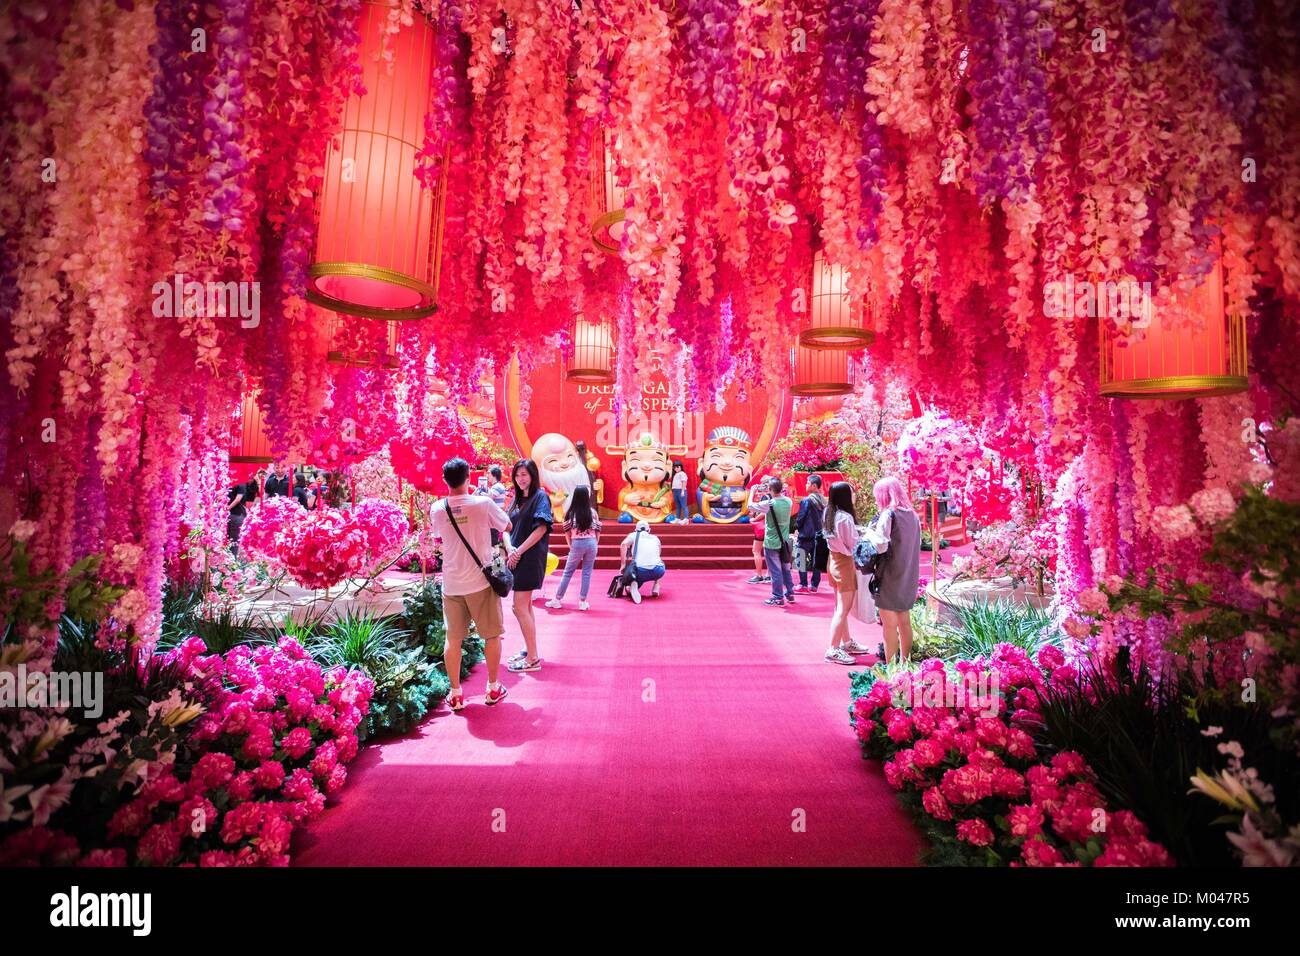 Kuala lumpur malaysia 19th jan 2018 people visit the decoration kuala lumpur malaysia 19th jan 2018 people visit the decoration named dream garden of prosperity which is set to welcome the upcoming chinese lunar junglespirit Images